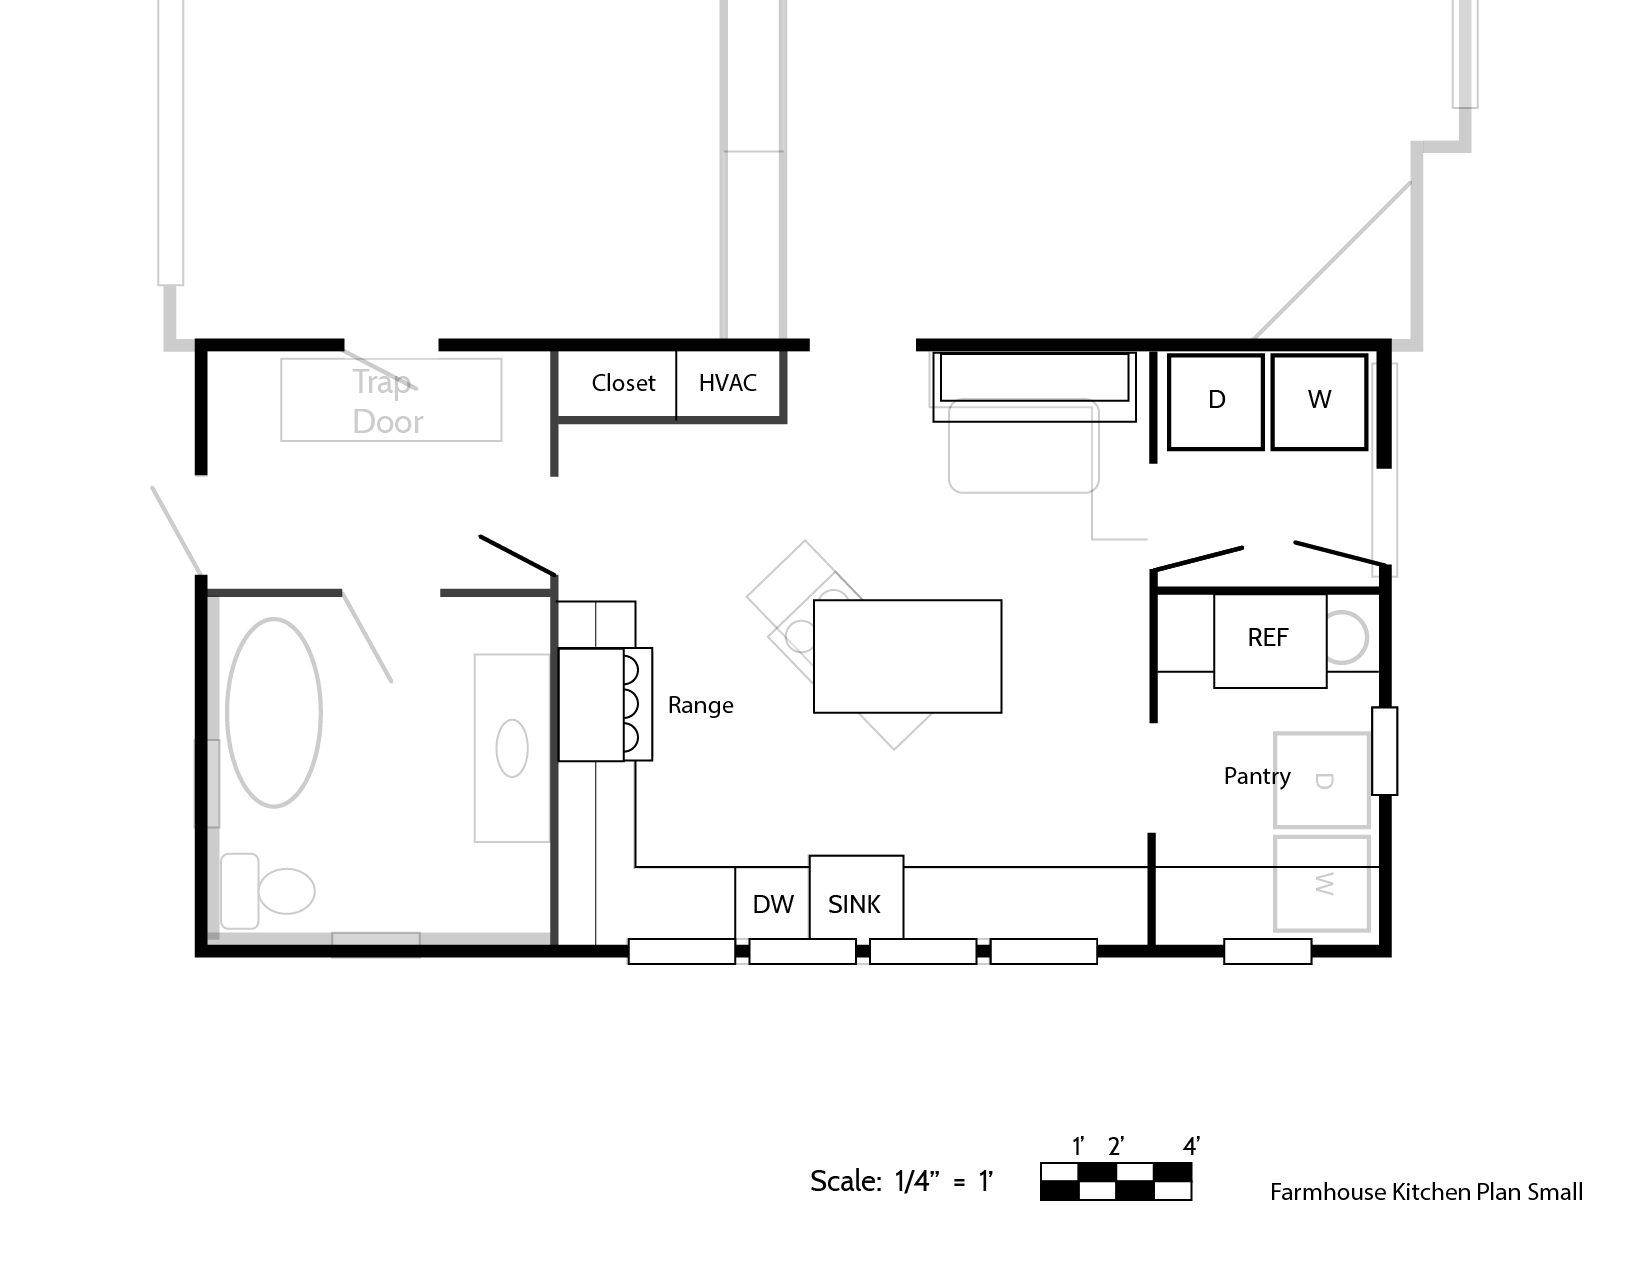 kitchen floorplans our final farmhouse kitchen floor plan and how we made the decision the grit and polish 2233